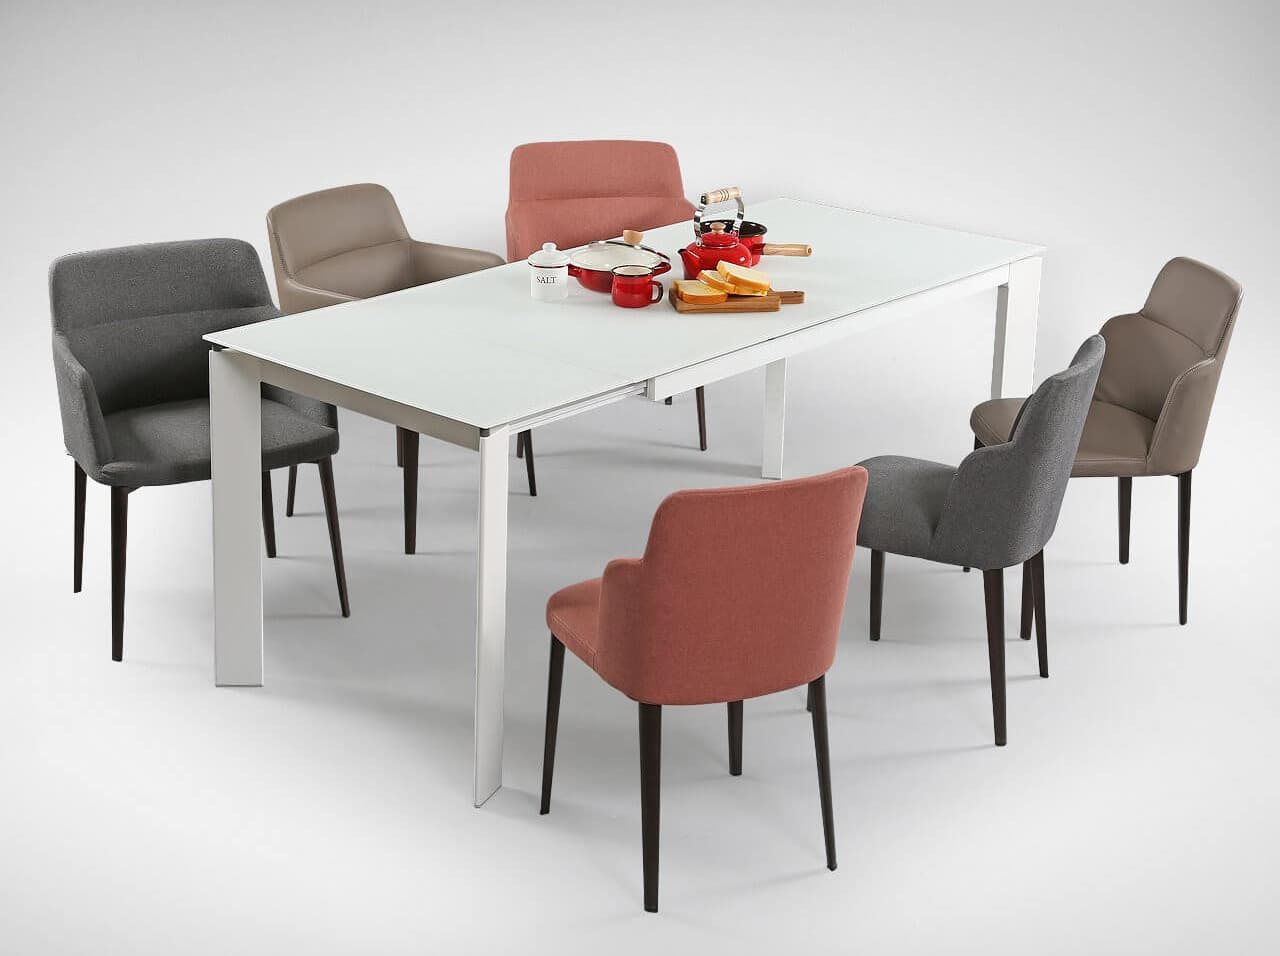 Colourful Dining Chairs Combination for A Lively Dining Room - Comfort Furniture